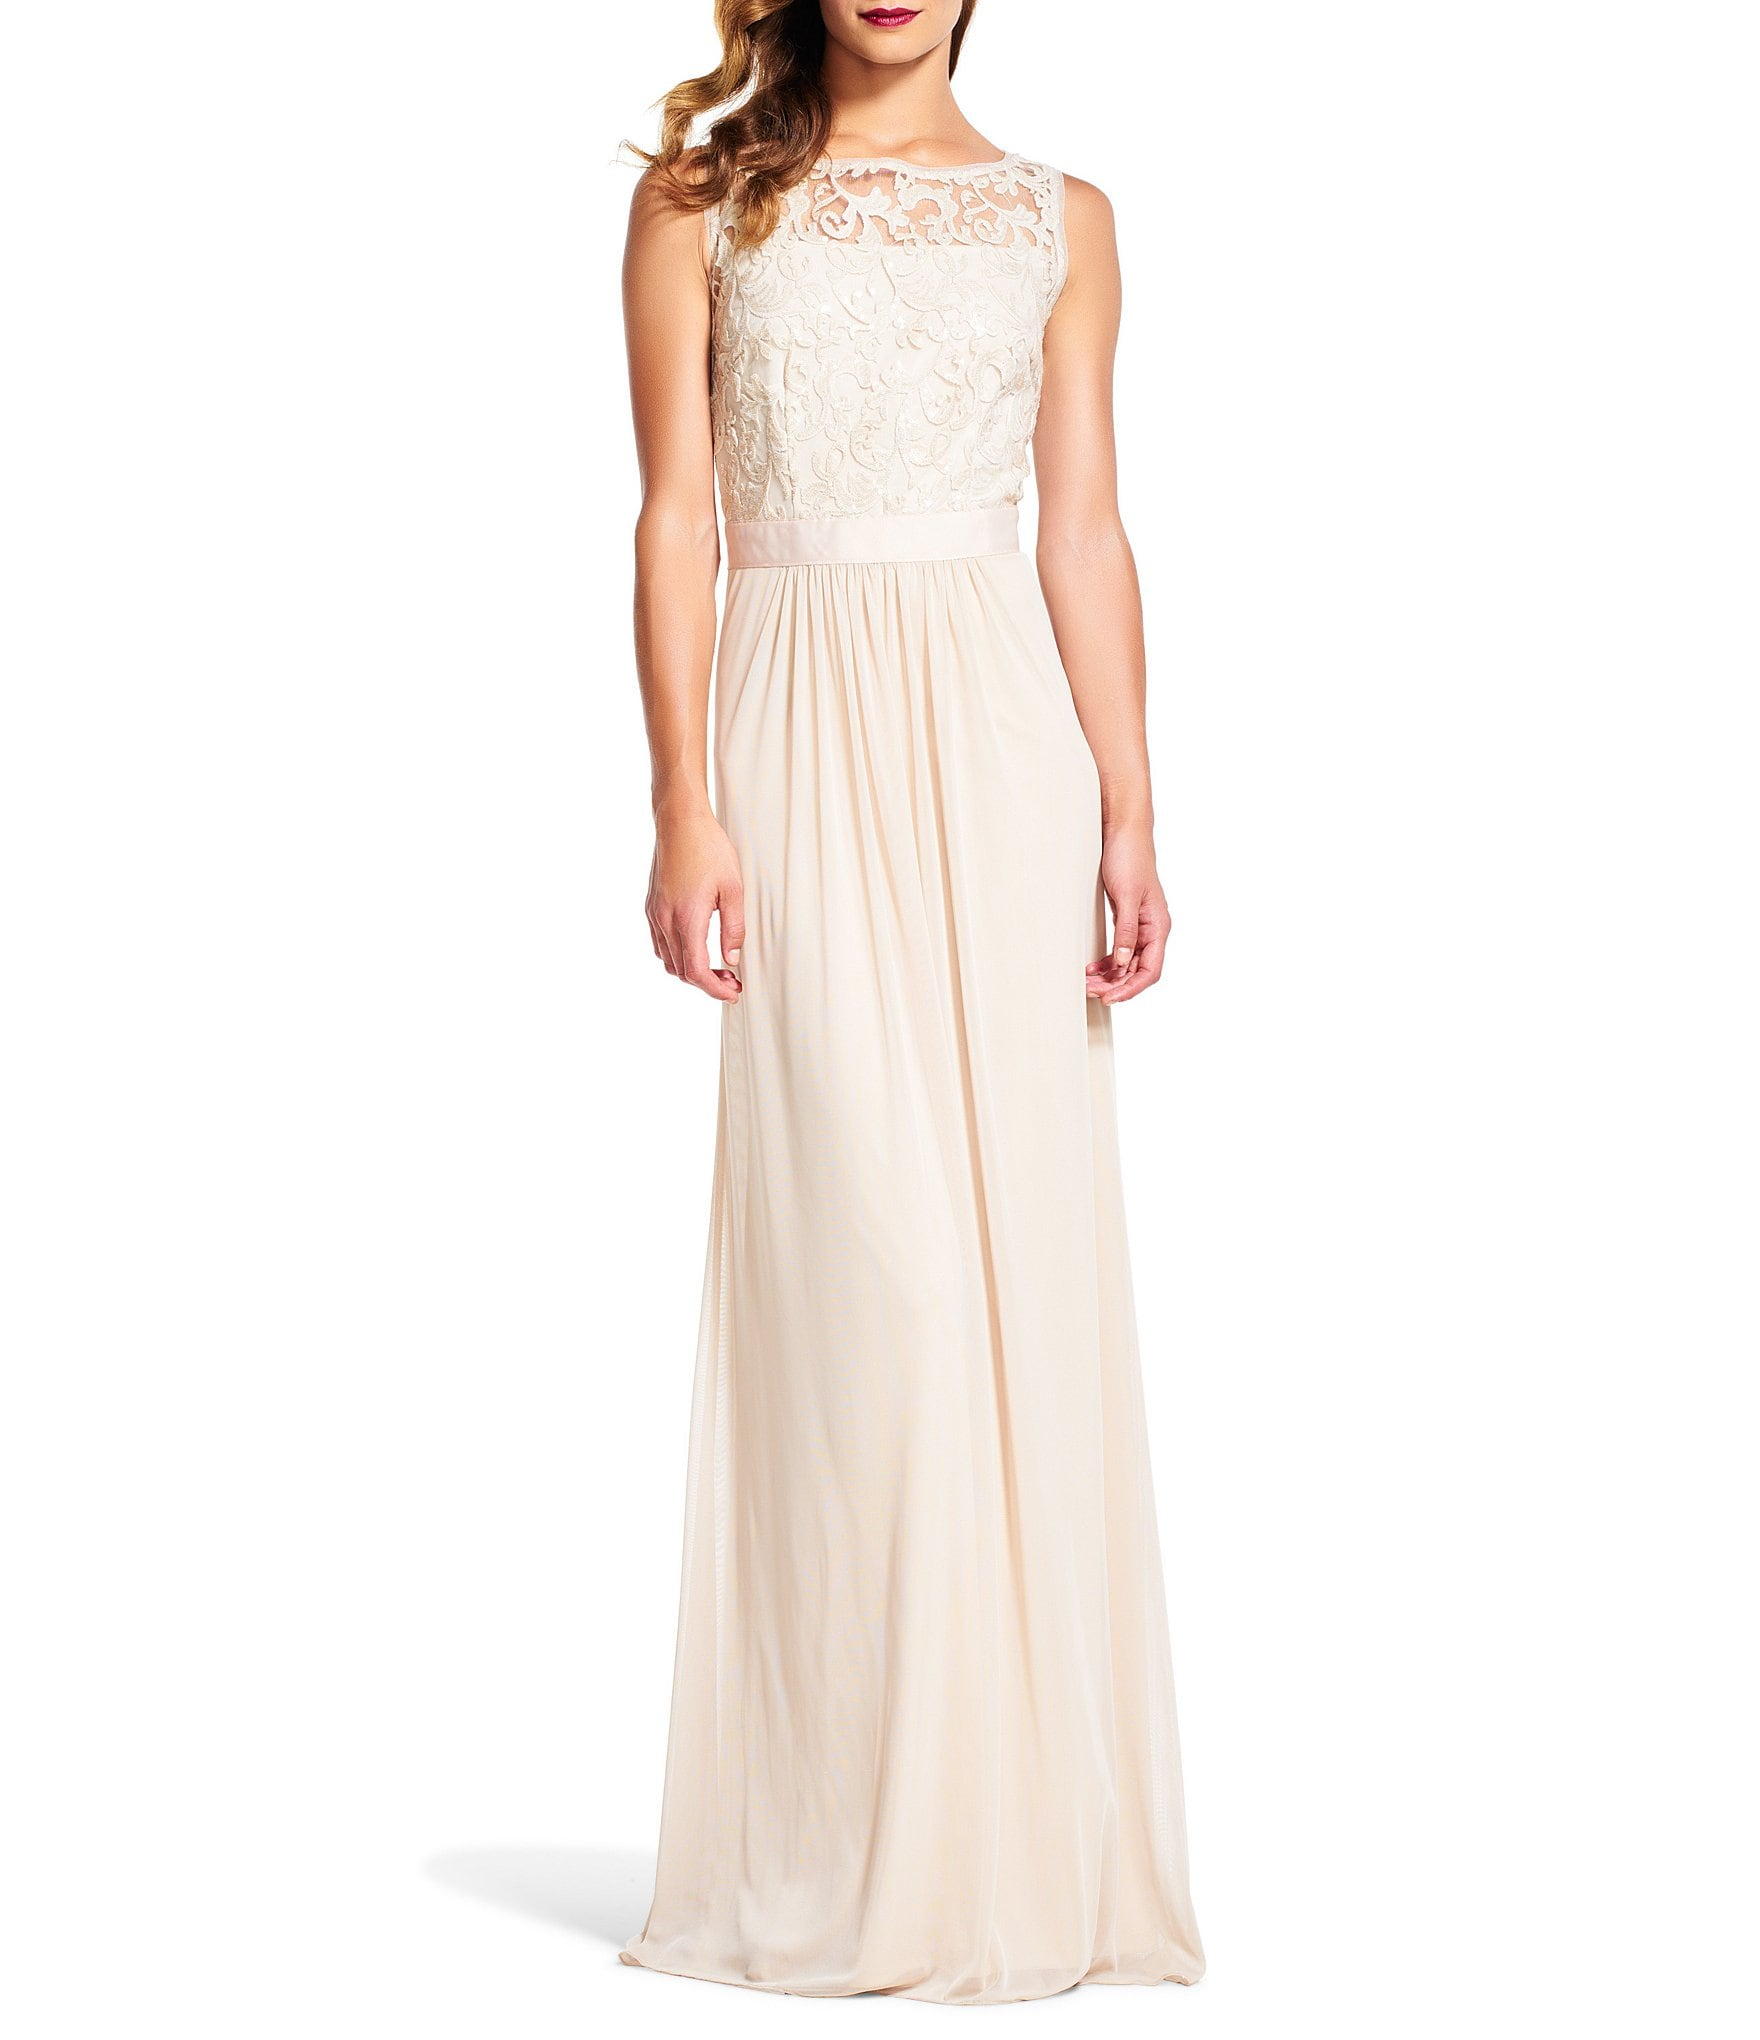 Circle Track Supply >> Adrianna Papell Sequin Lace Chiffon Gown | Dillards